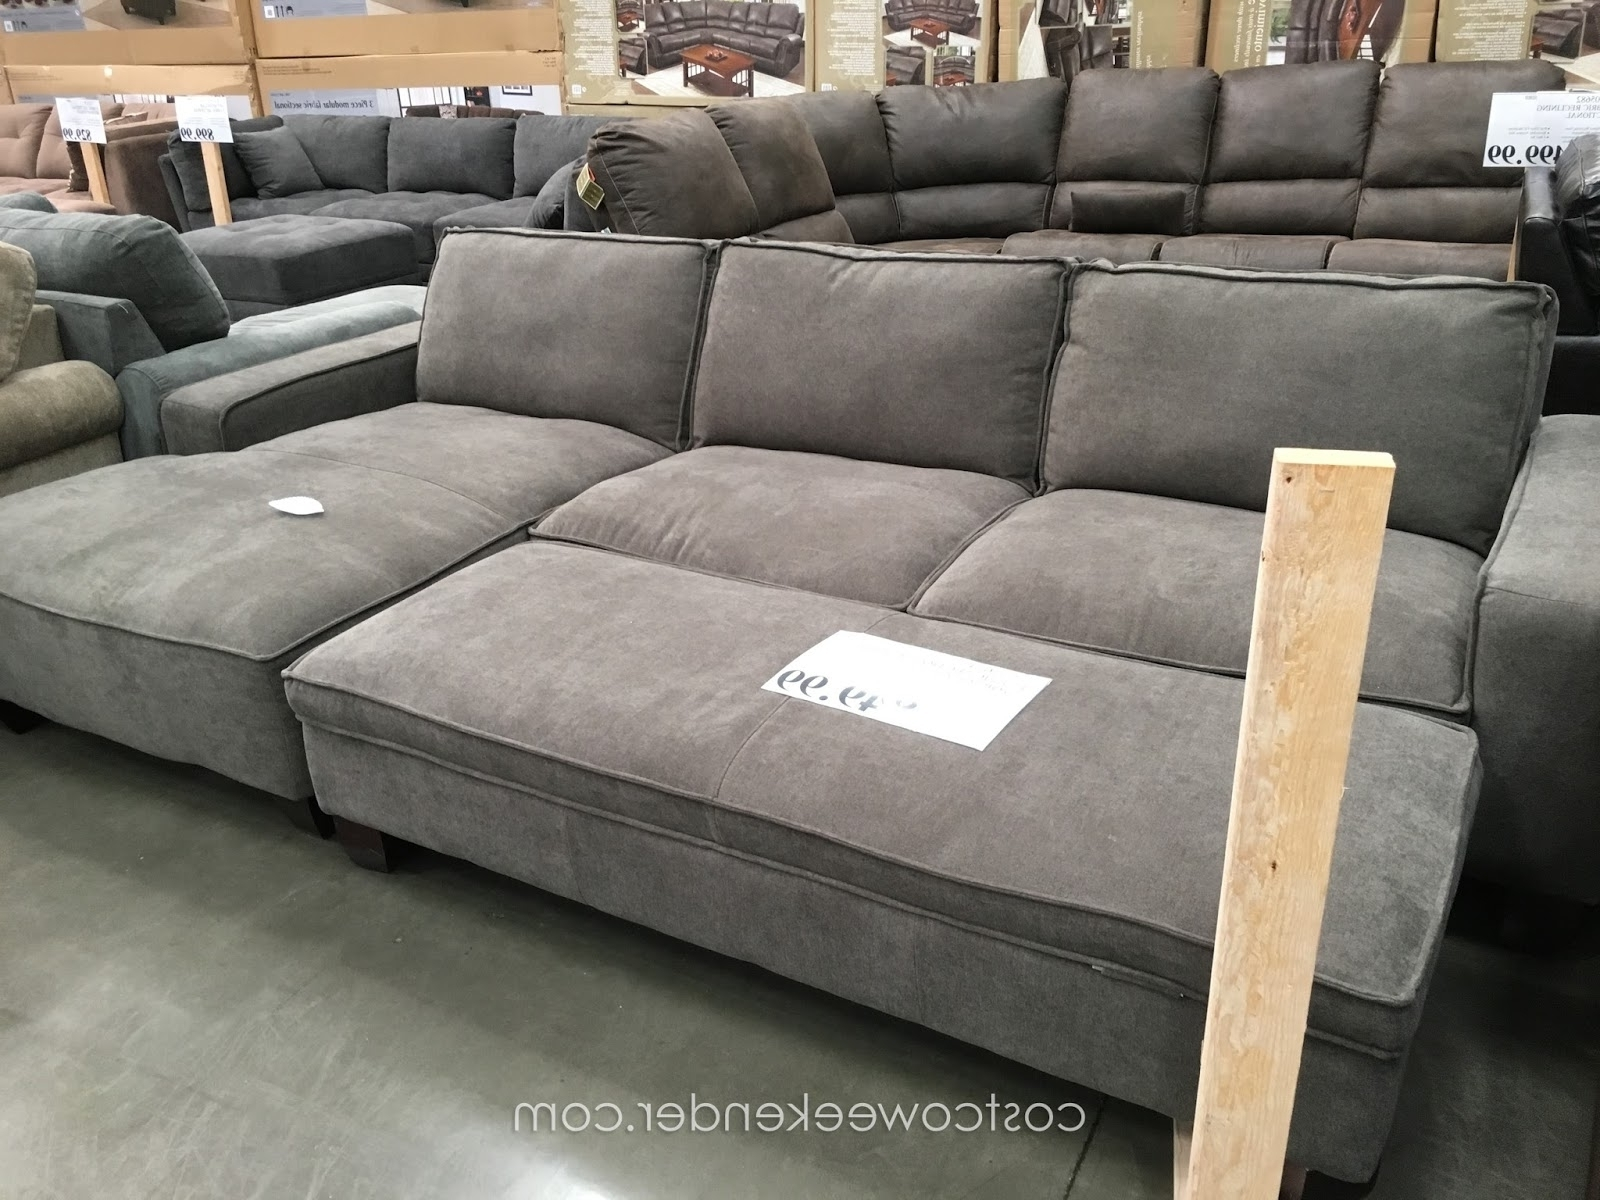 Most Current Sectional Sofas At Costco With Regard To Costco Sleeper Sofa With Chaise – Mariaalcocer (View 4 of 15)